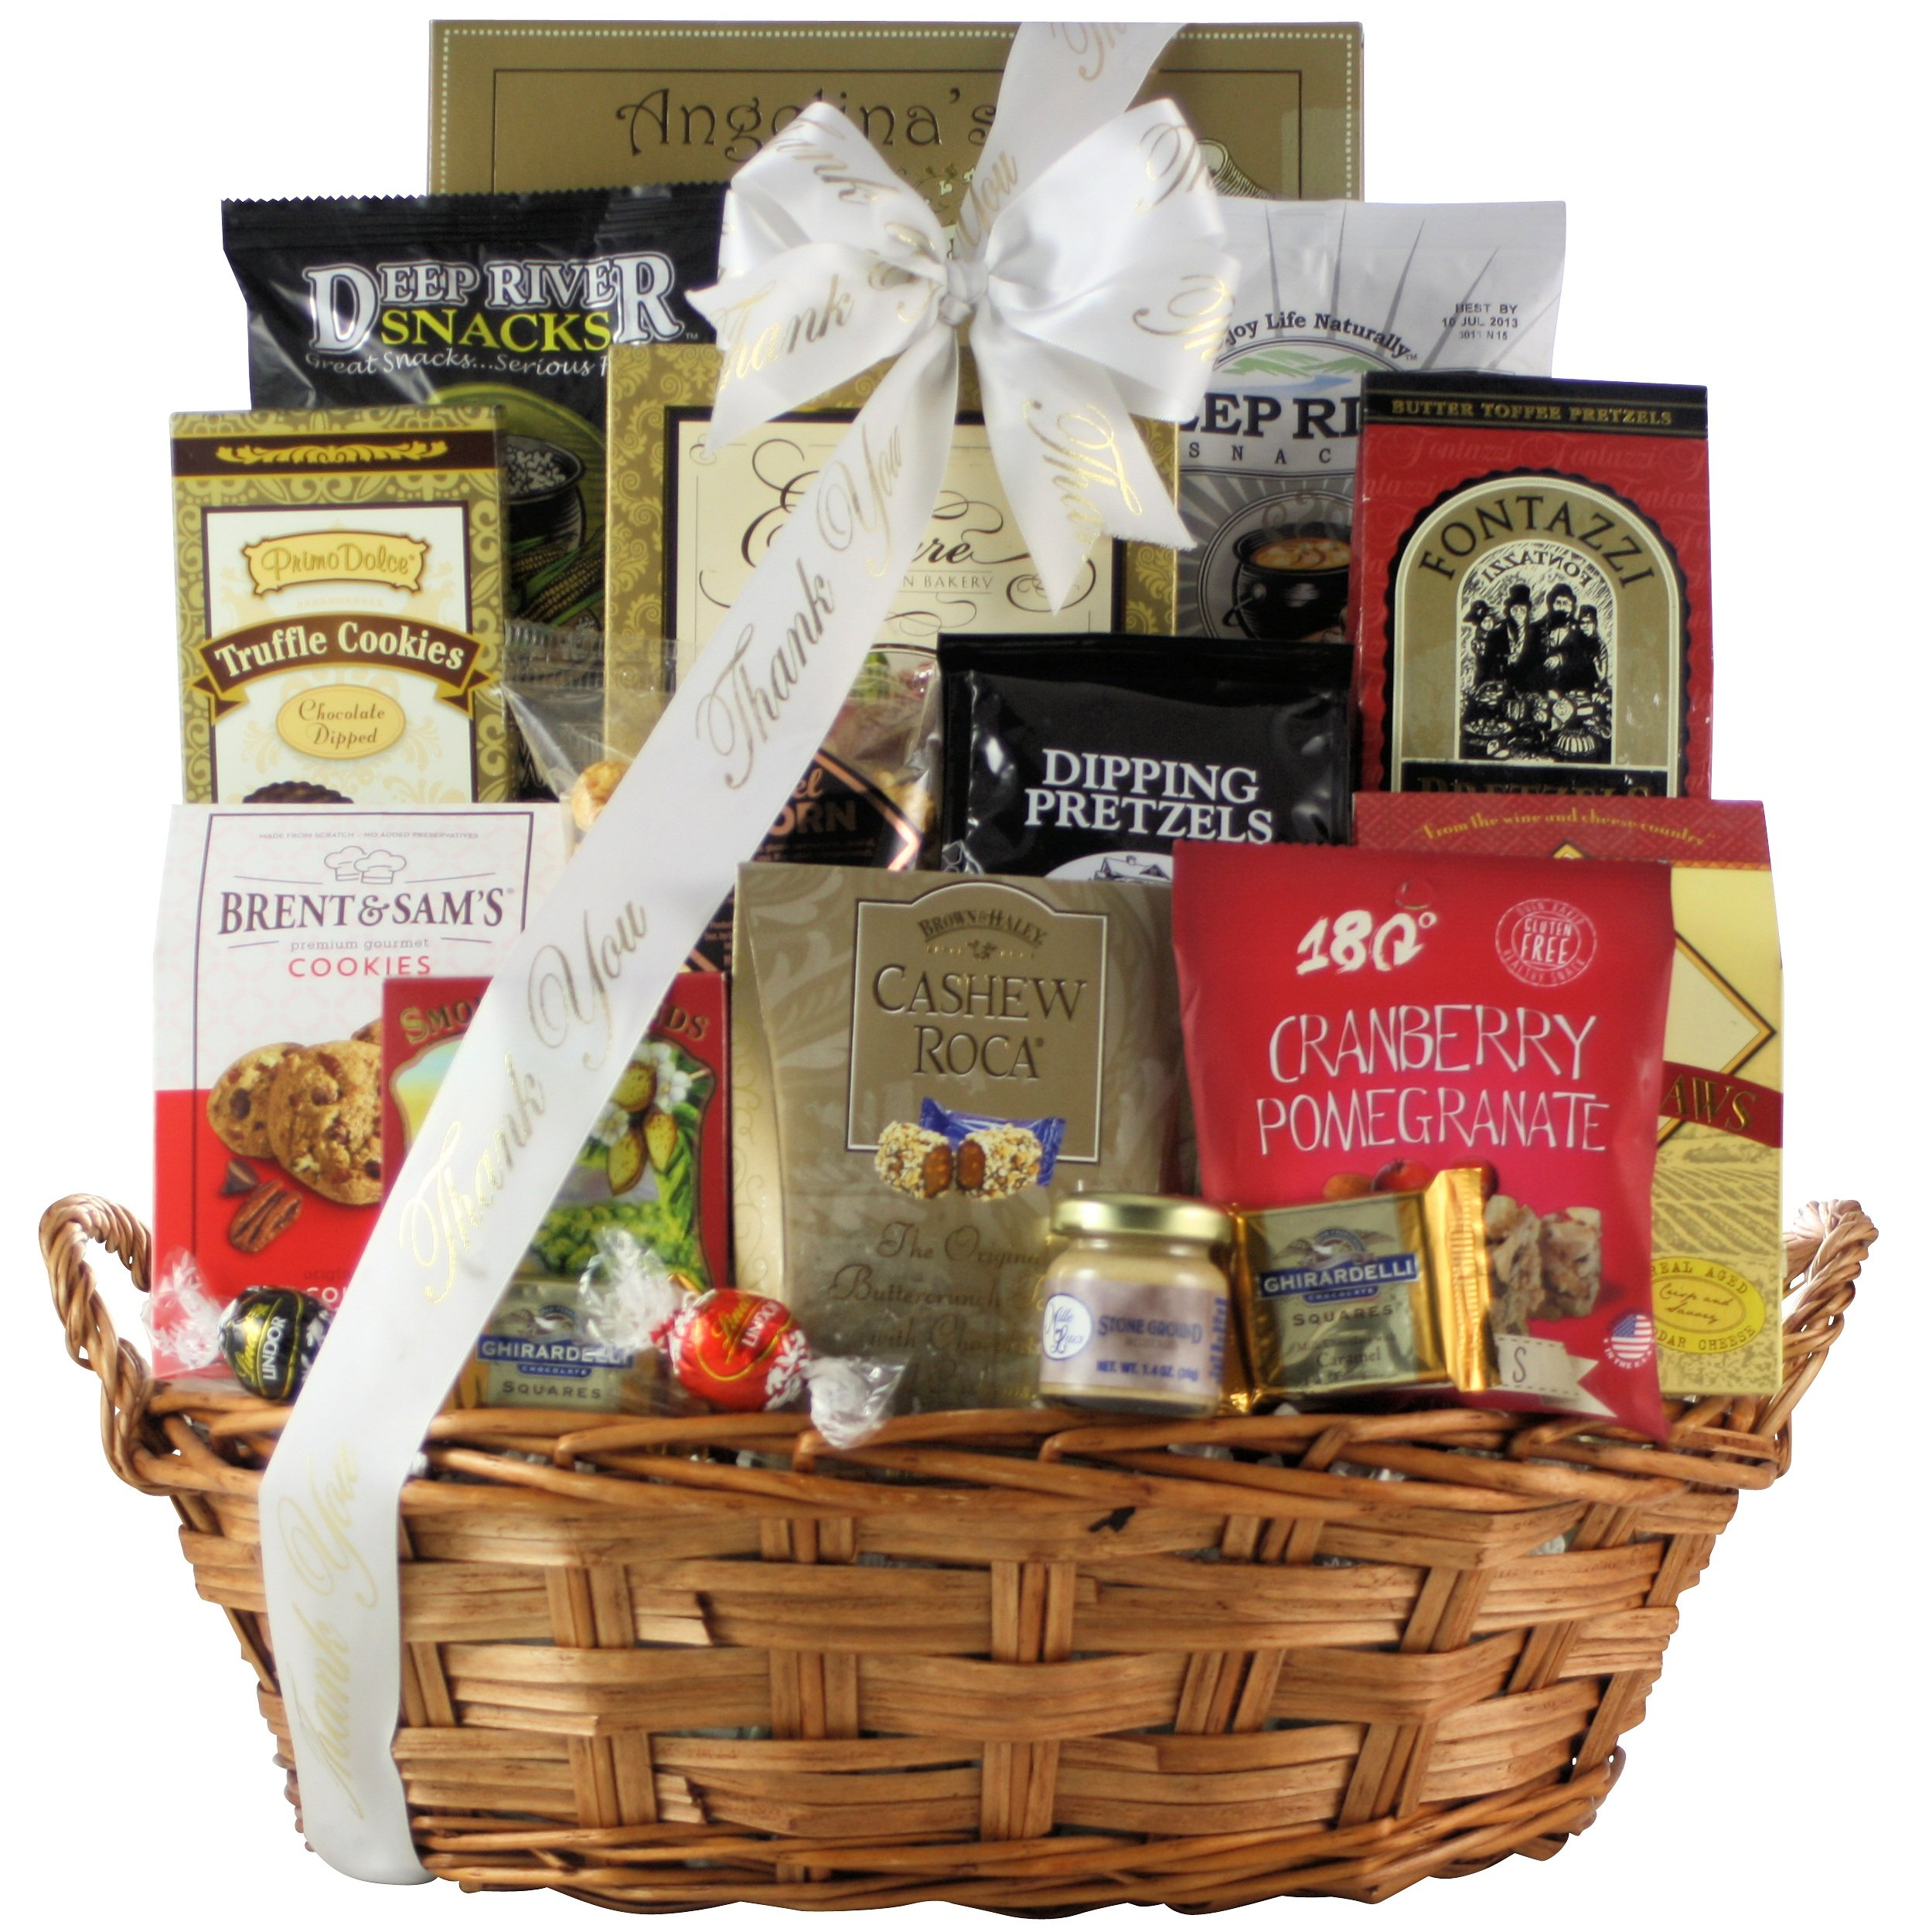 GreatArrivals Snack Attack Thank You Snack Basket, Large, 5 Pound by GreatArrivals Gift Baskets (Image #1)